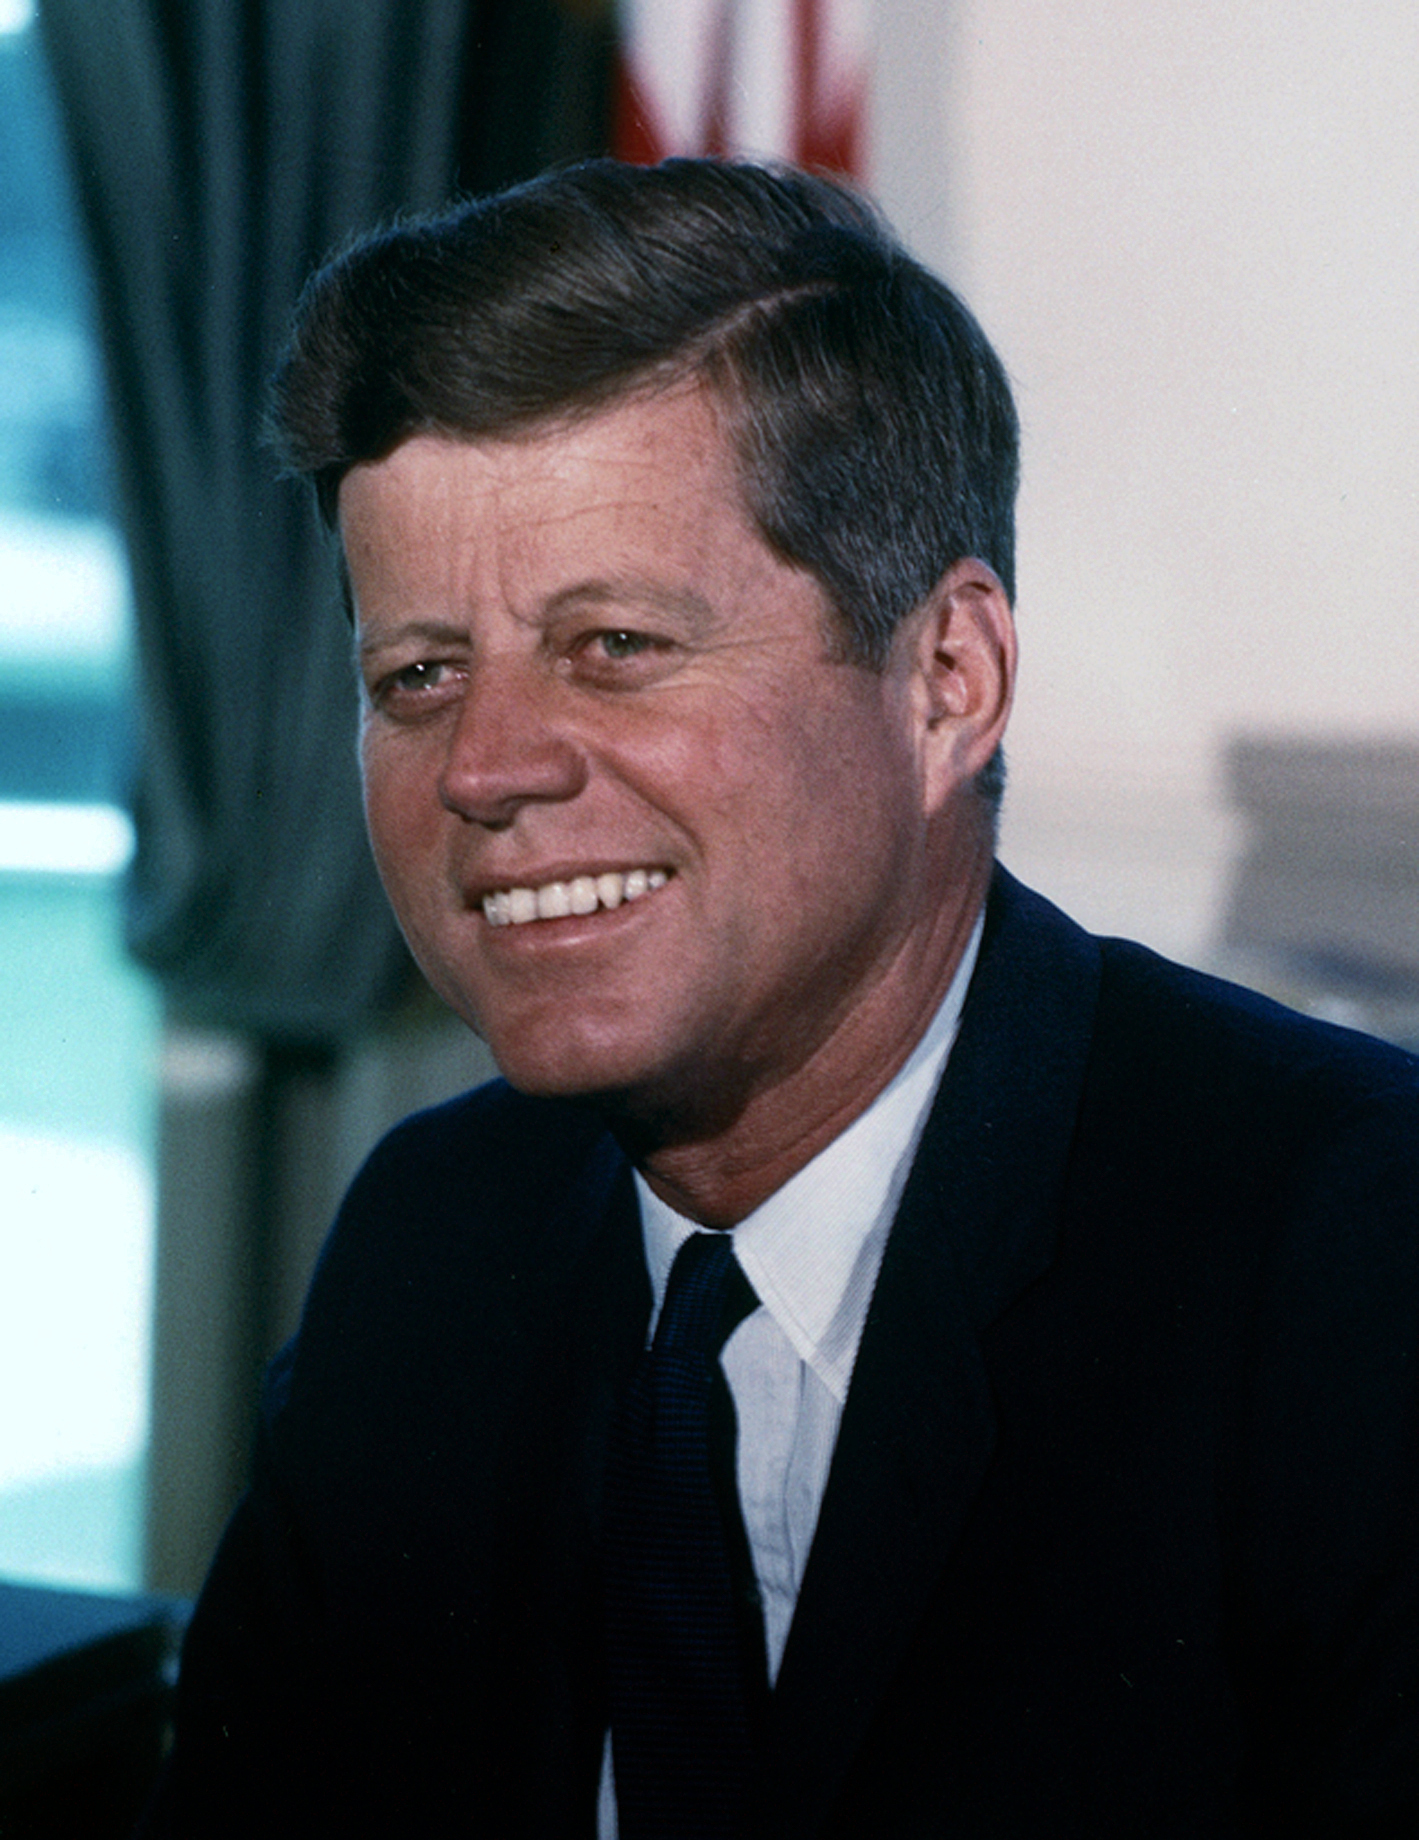 File:John F. Kennedy, White House color photo portrait.jpg ...